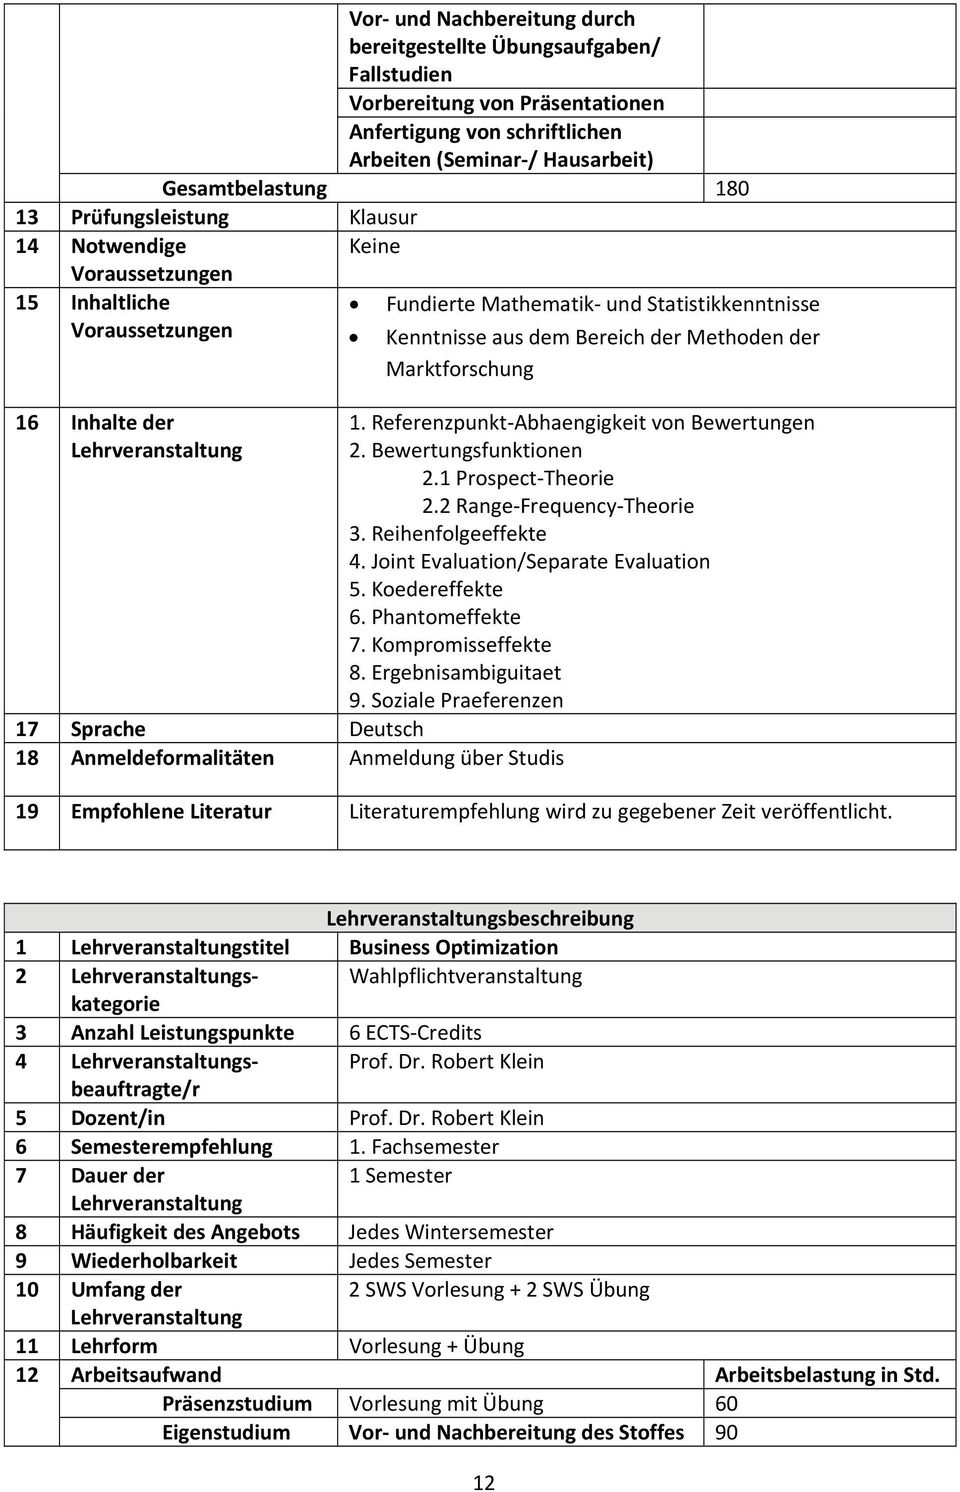 Joint Evaluation/Separate Evaluation 5. Koedereffekte 6. Phantomeffekte 7. Kompromisseffekte 8. Ergebnisambiguitaet 9.